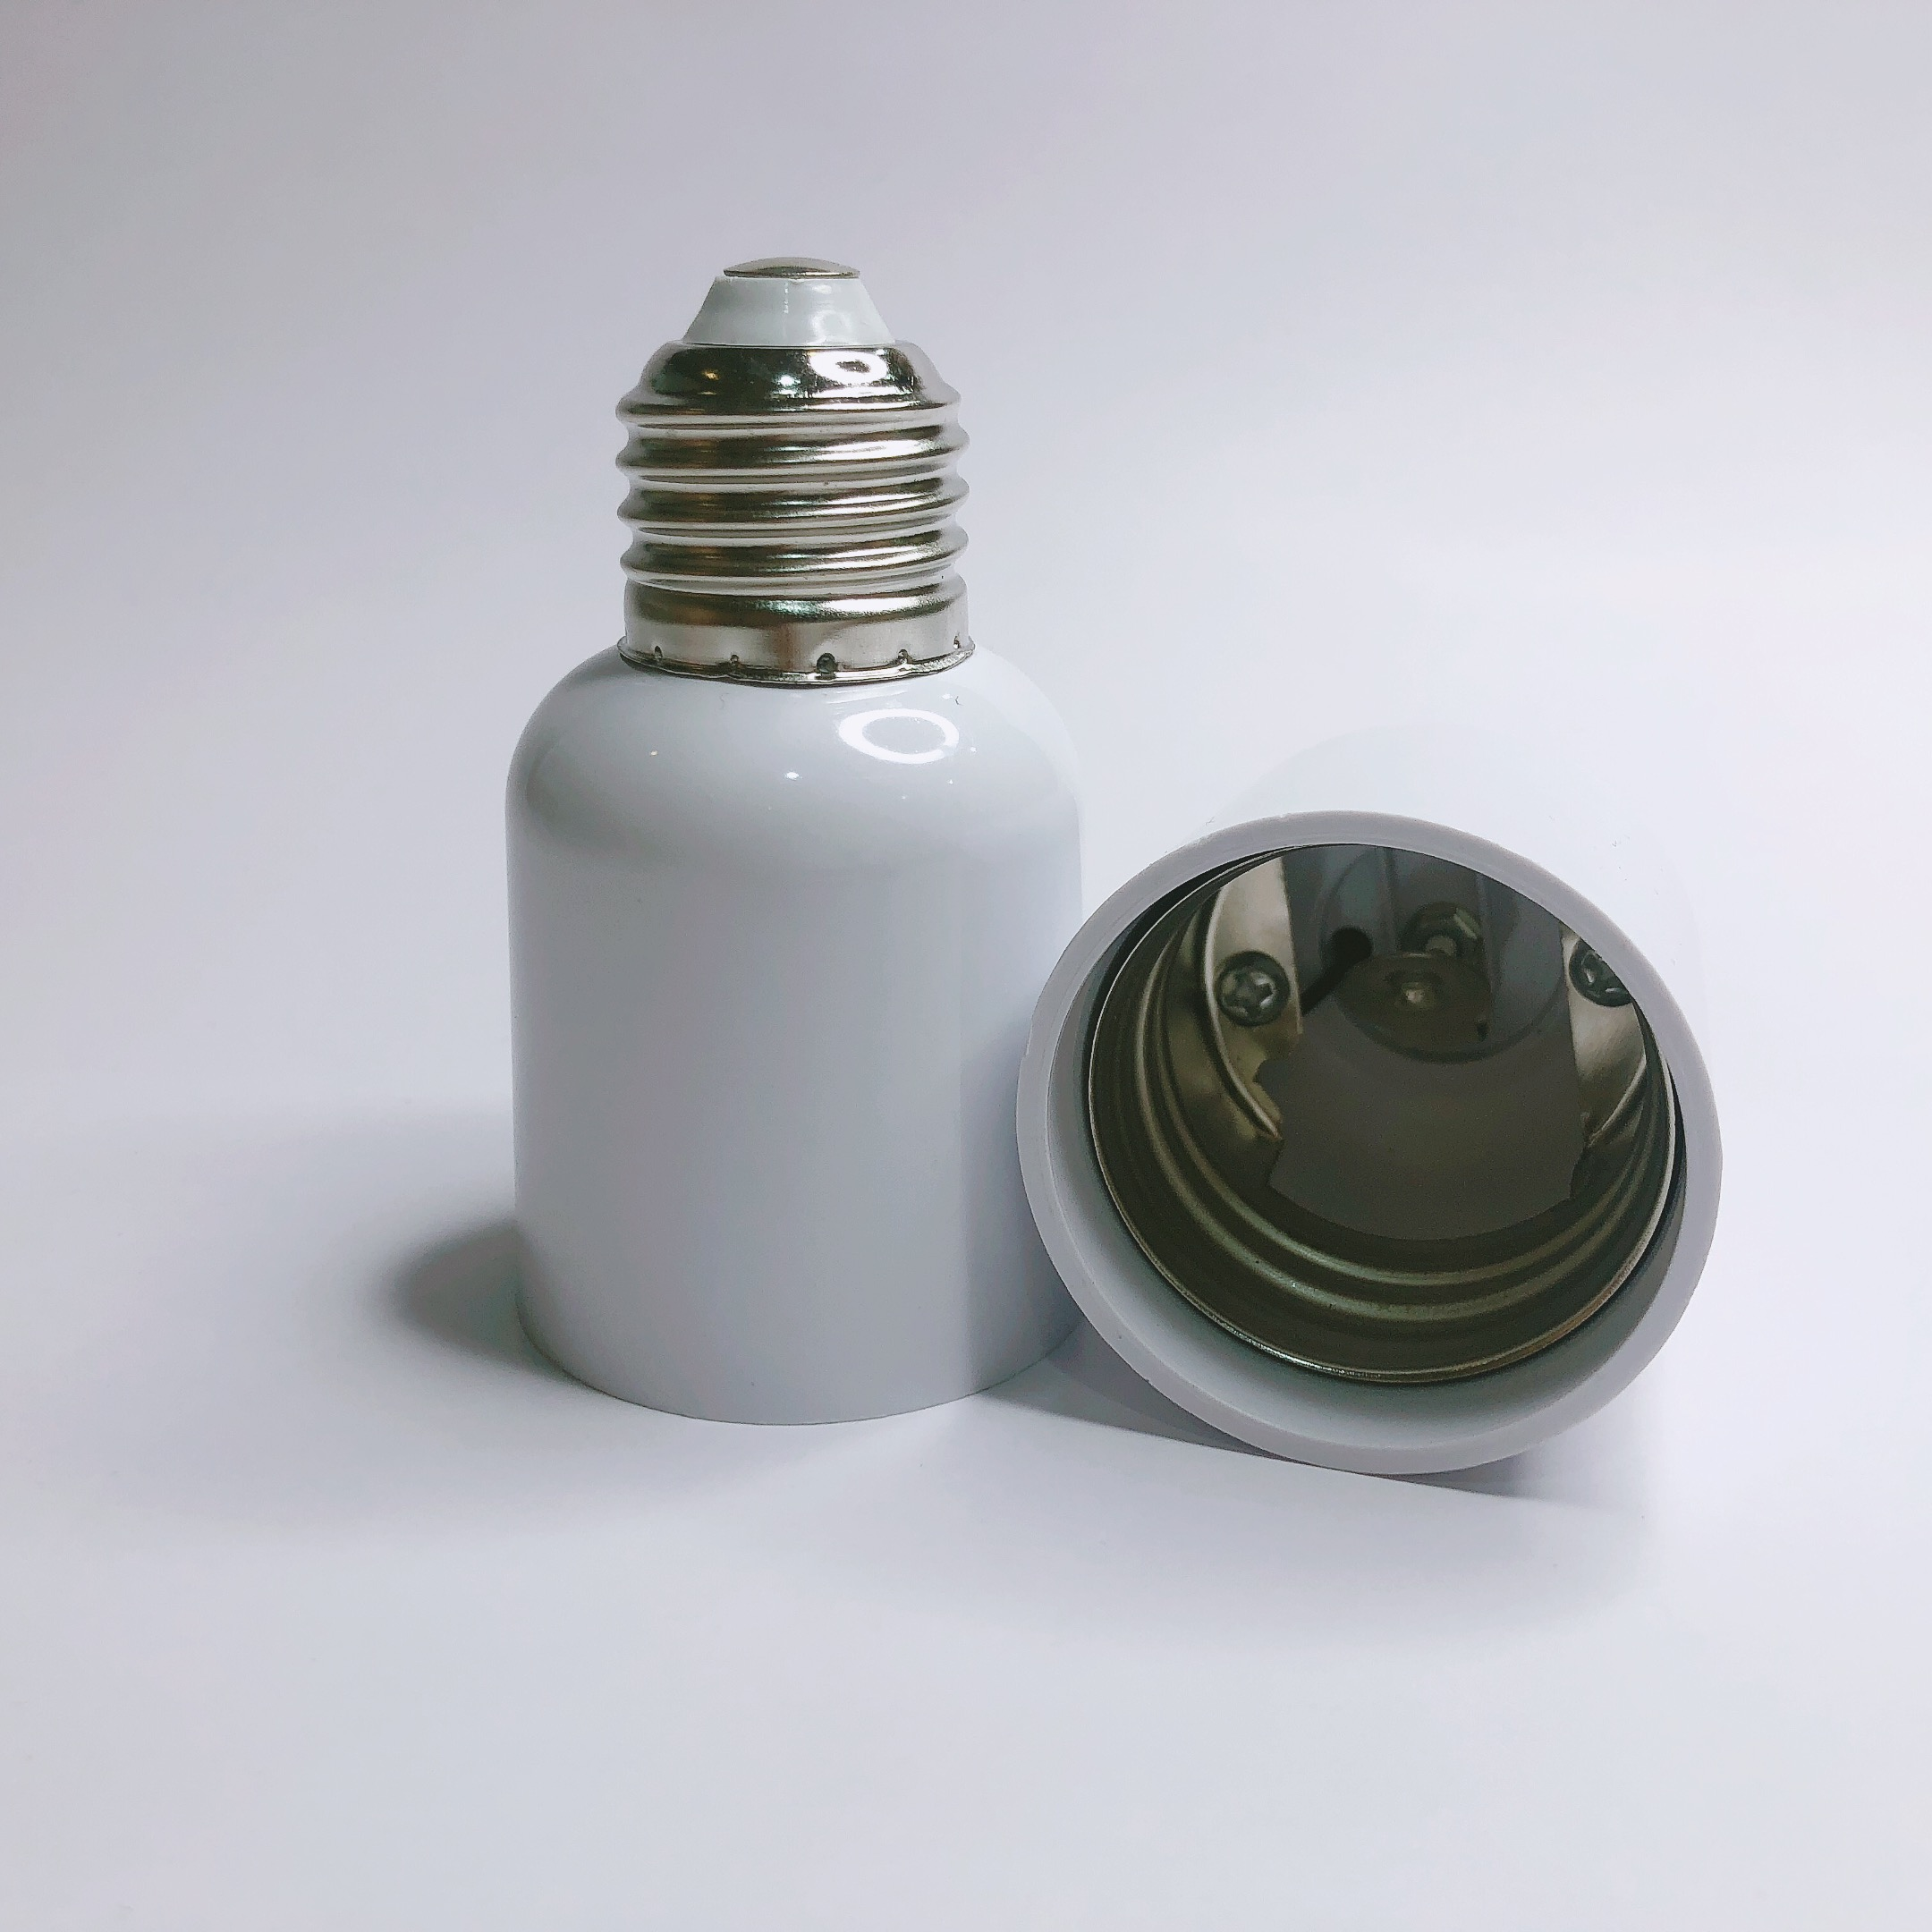 E27 To E40 Accessories Led Socket Heat Resistant Adapter Lightweight Home Bulb Screw Base Lamp Holder Converter(China)